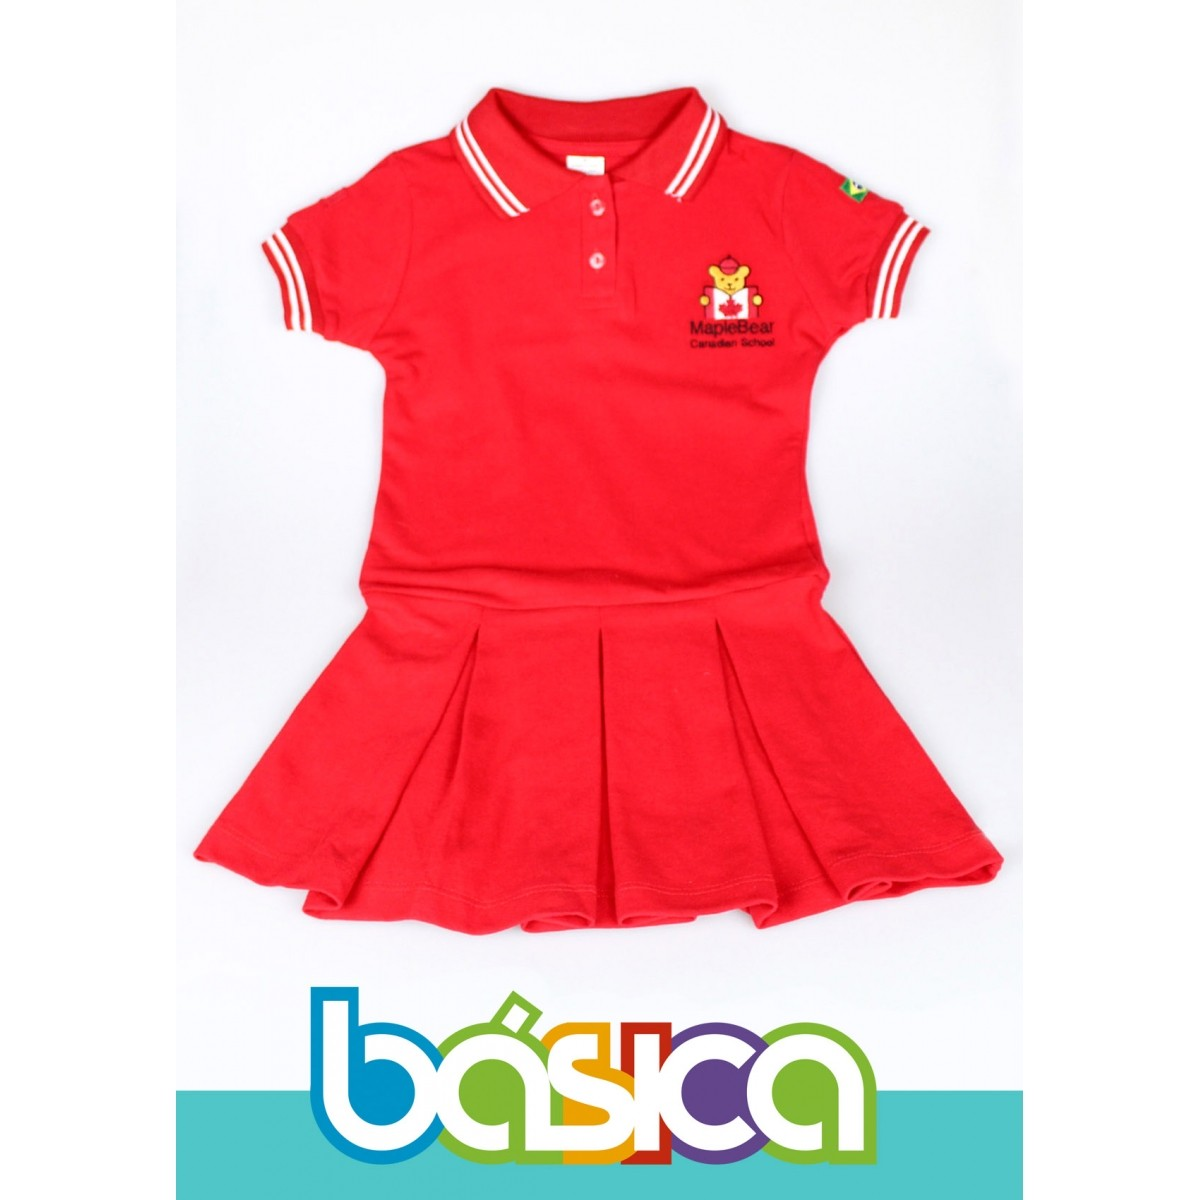 Vestido Maple Bear Infantil  - BÁSICA UNIFORMES